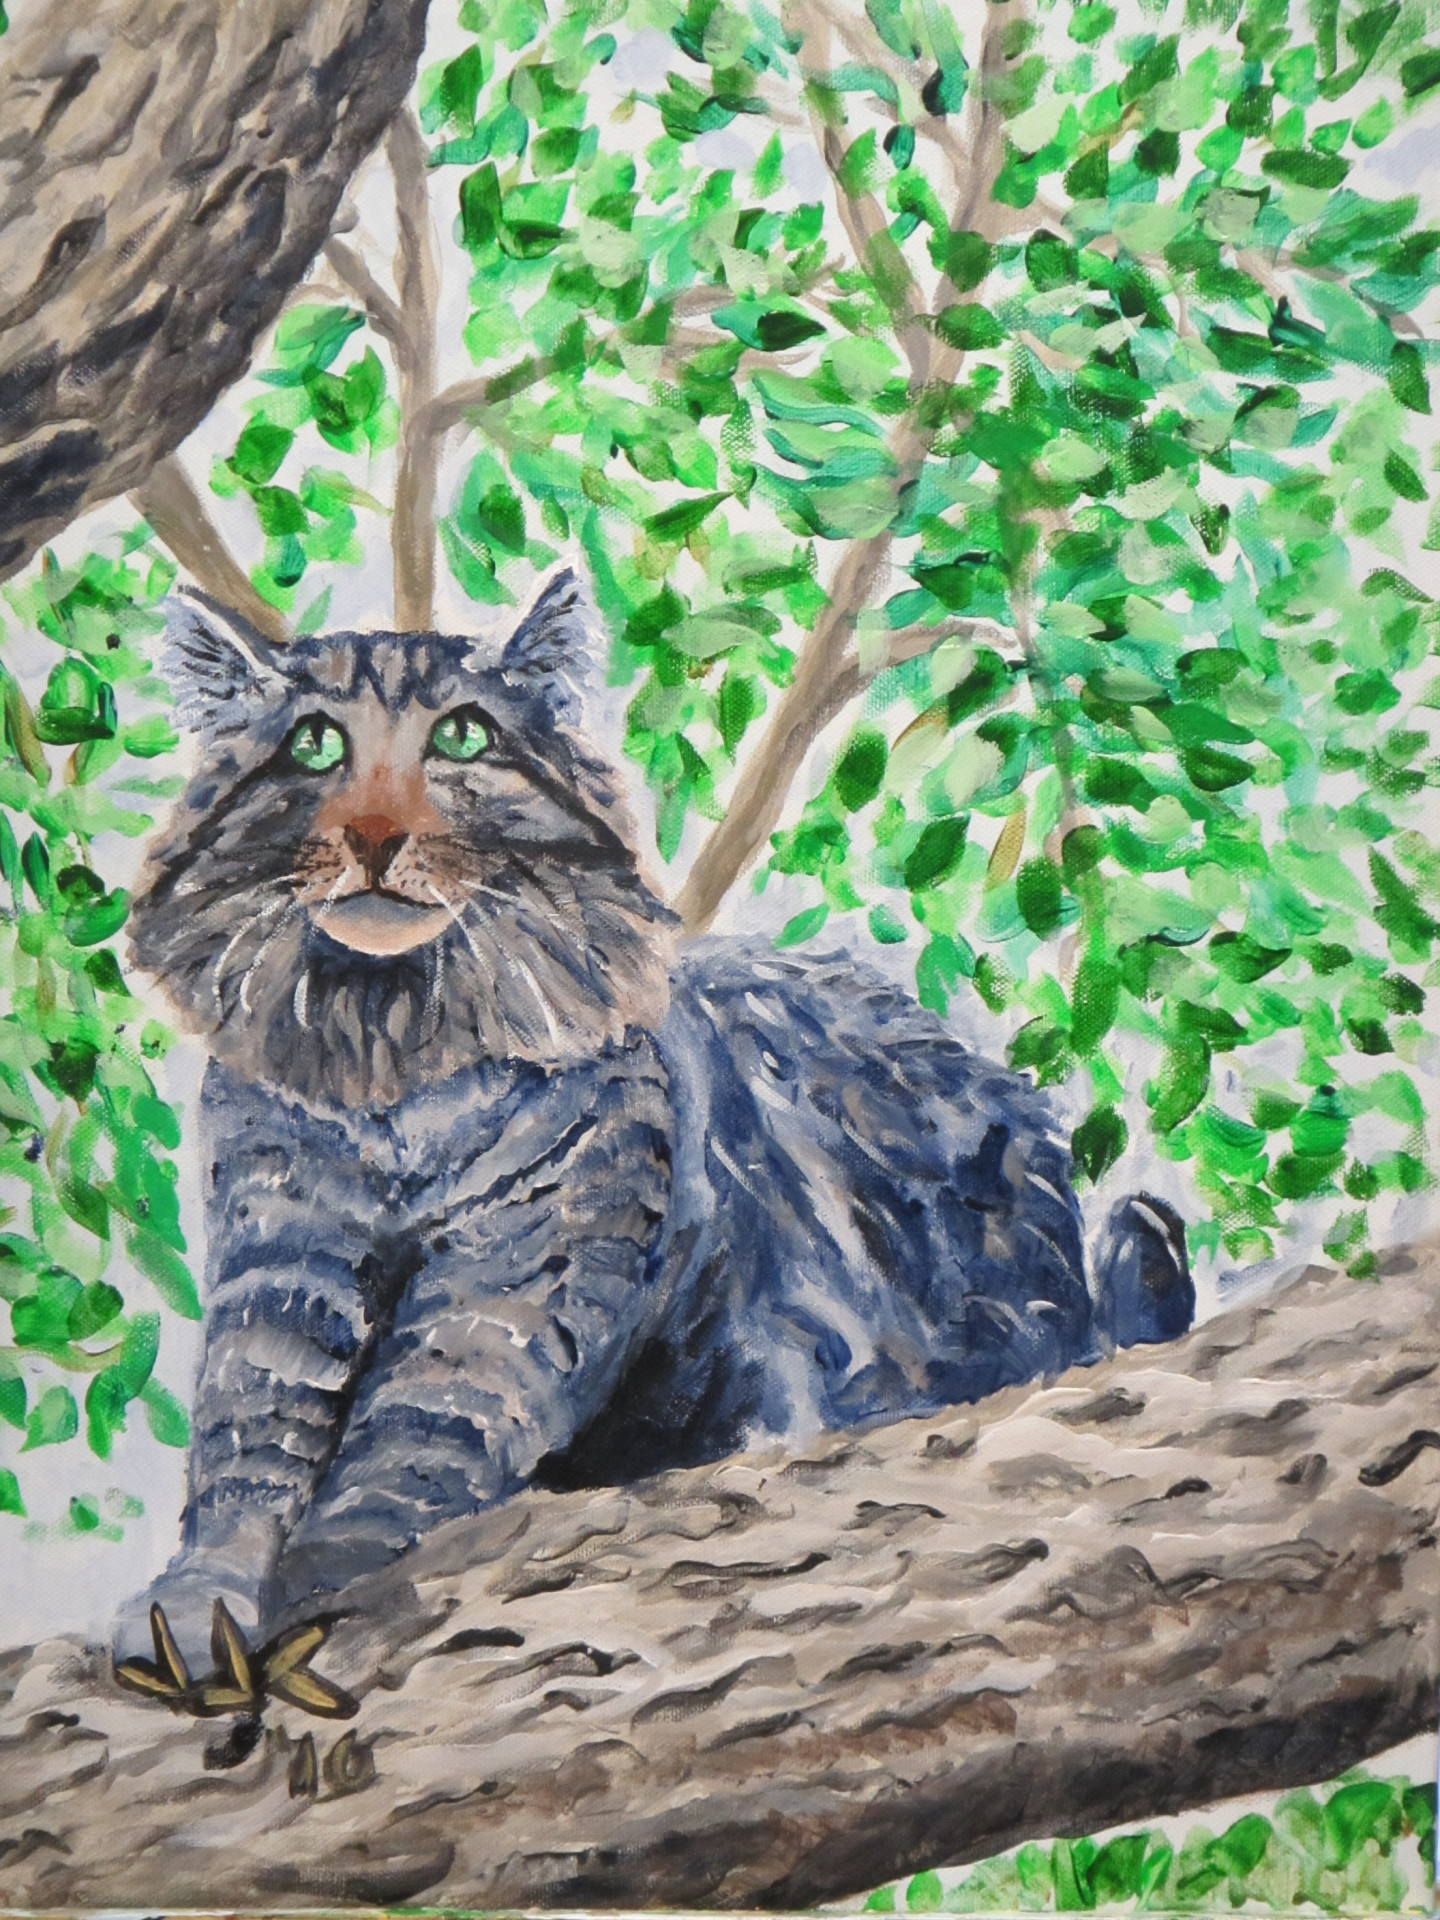 Acrylic painting of a really cool cat in a tree.